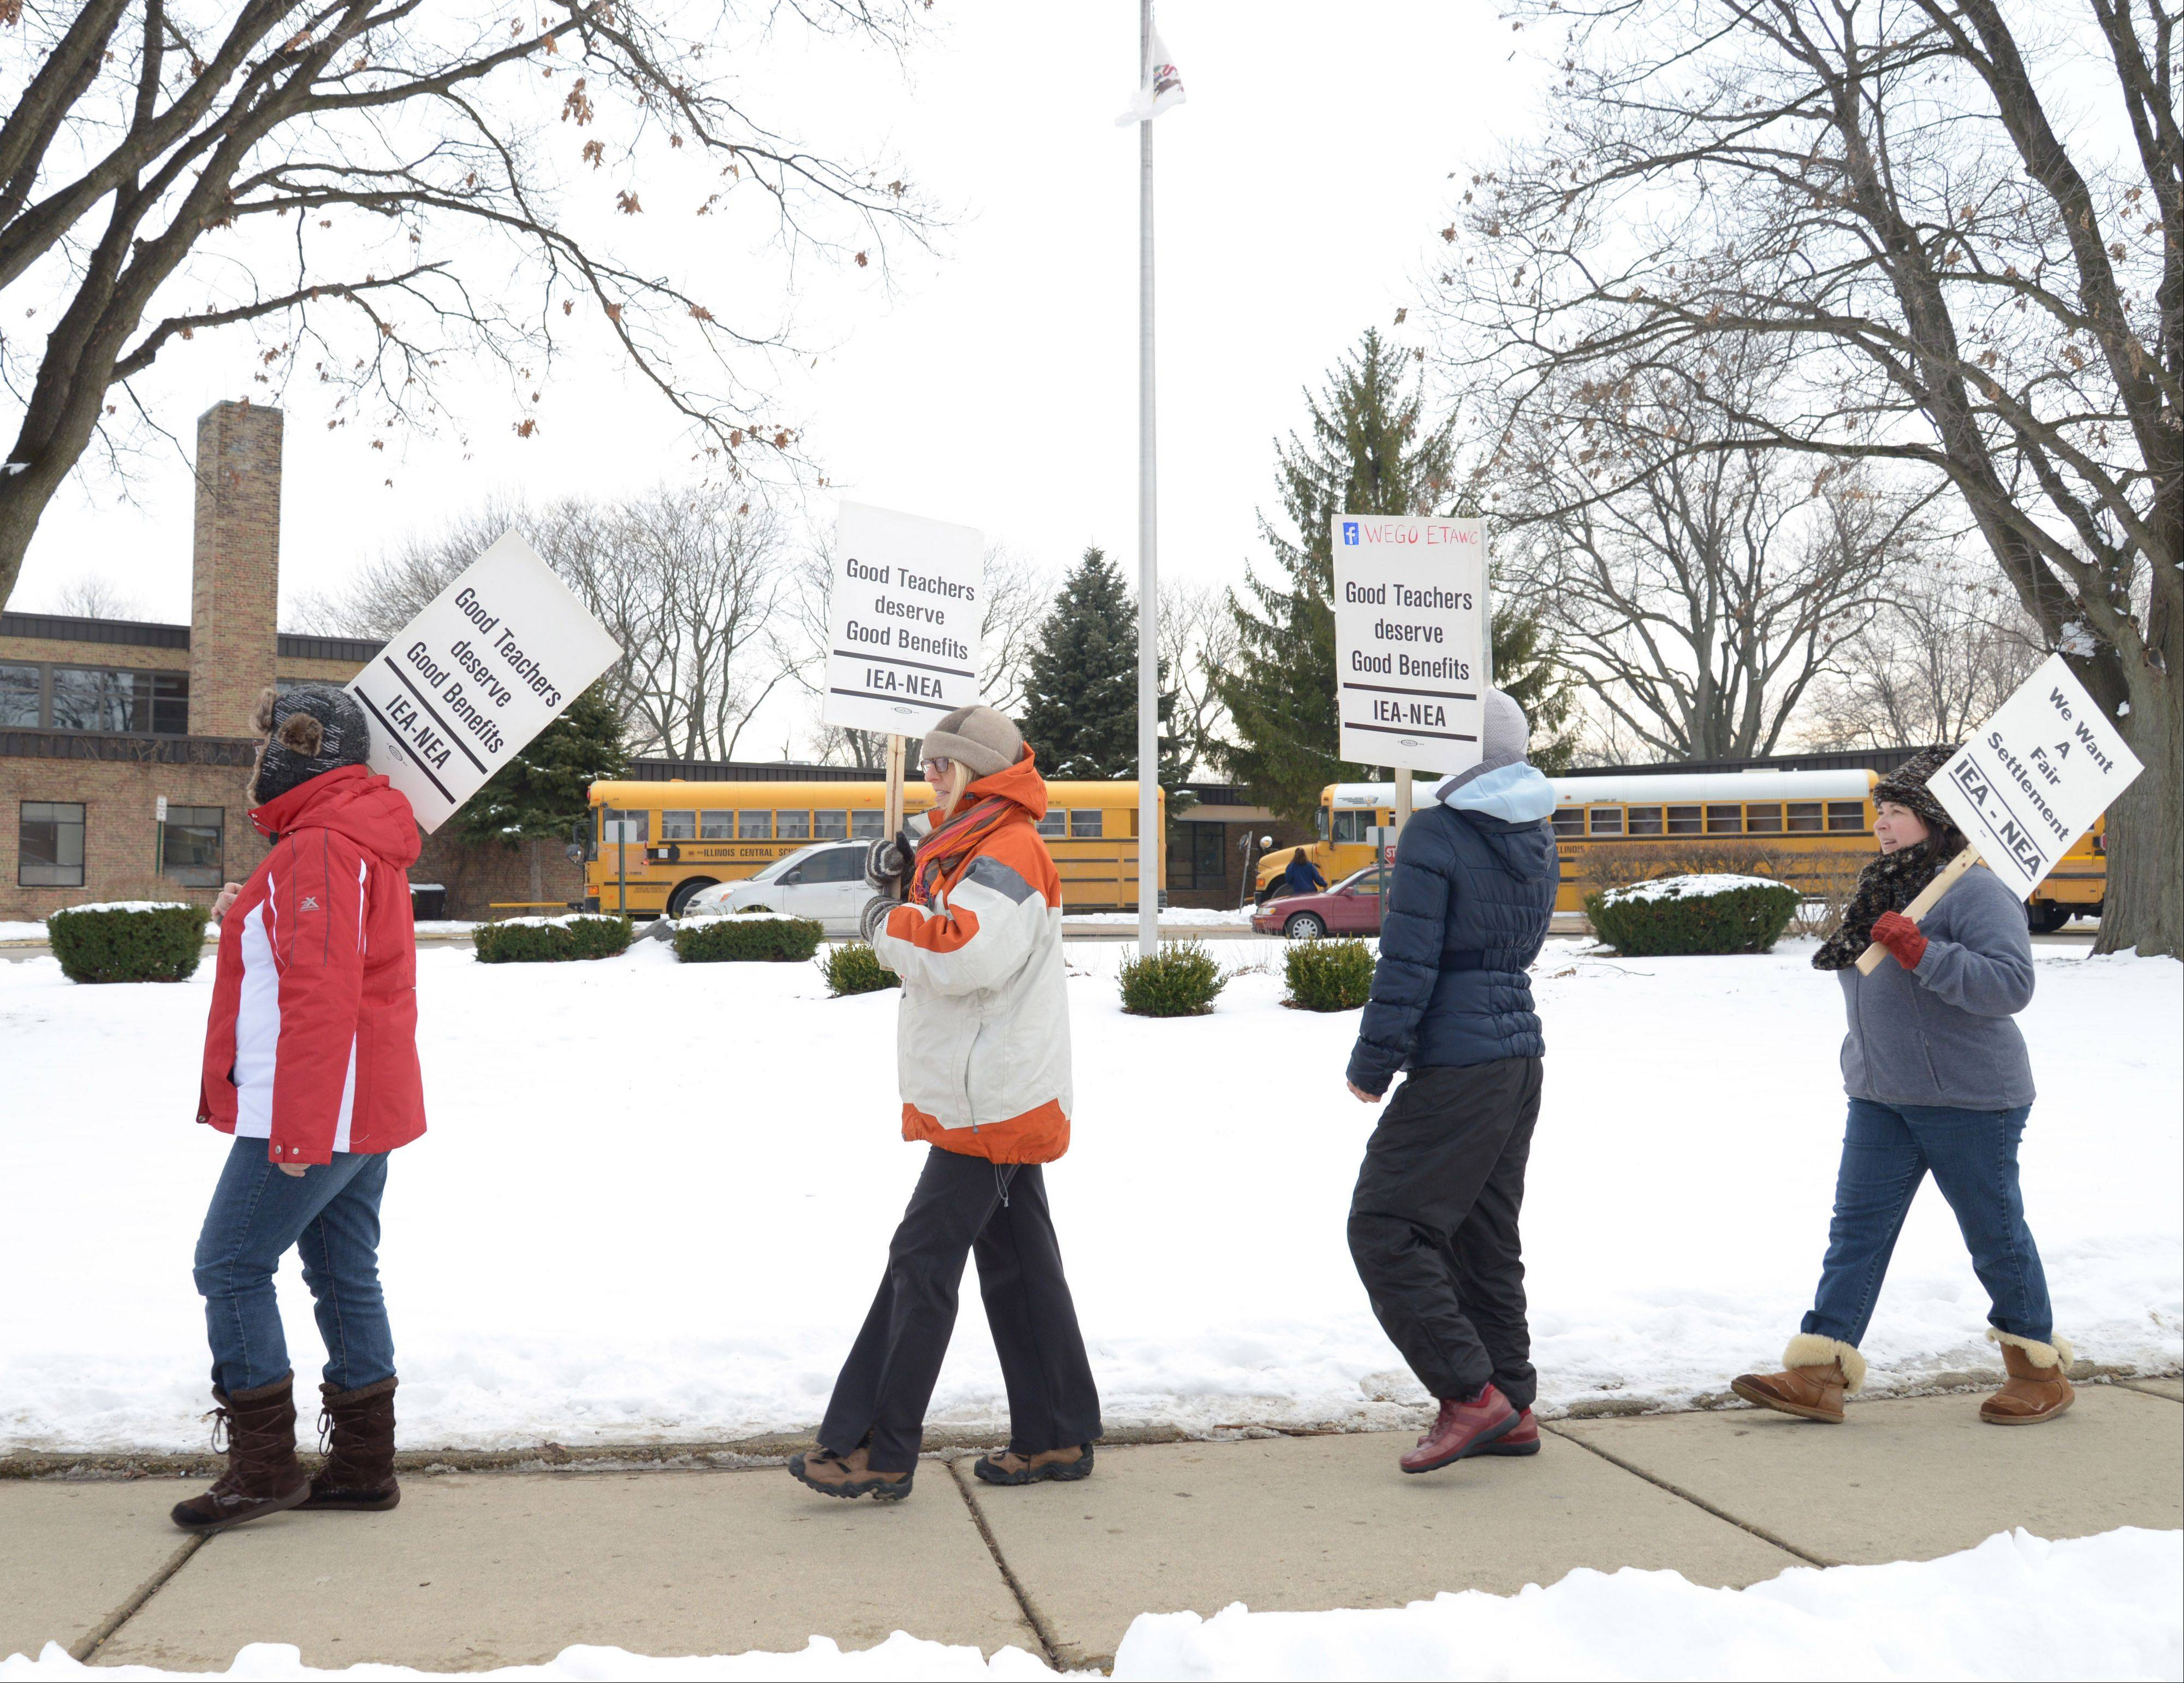 Teachers continued to walk the picket lines Wednesday at Gary Elementary School in West Chicago, as negotiating teams for the union and school board returned to the bargaining table for the fifth time in nine days.